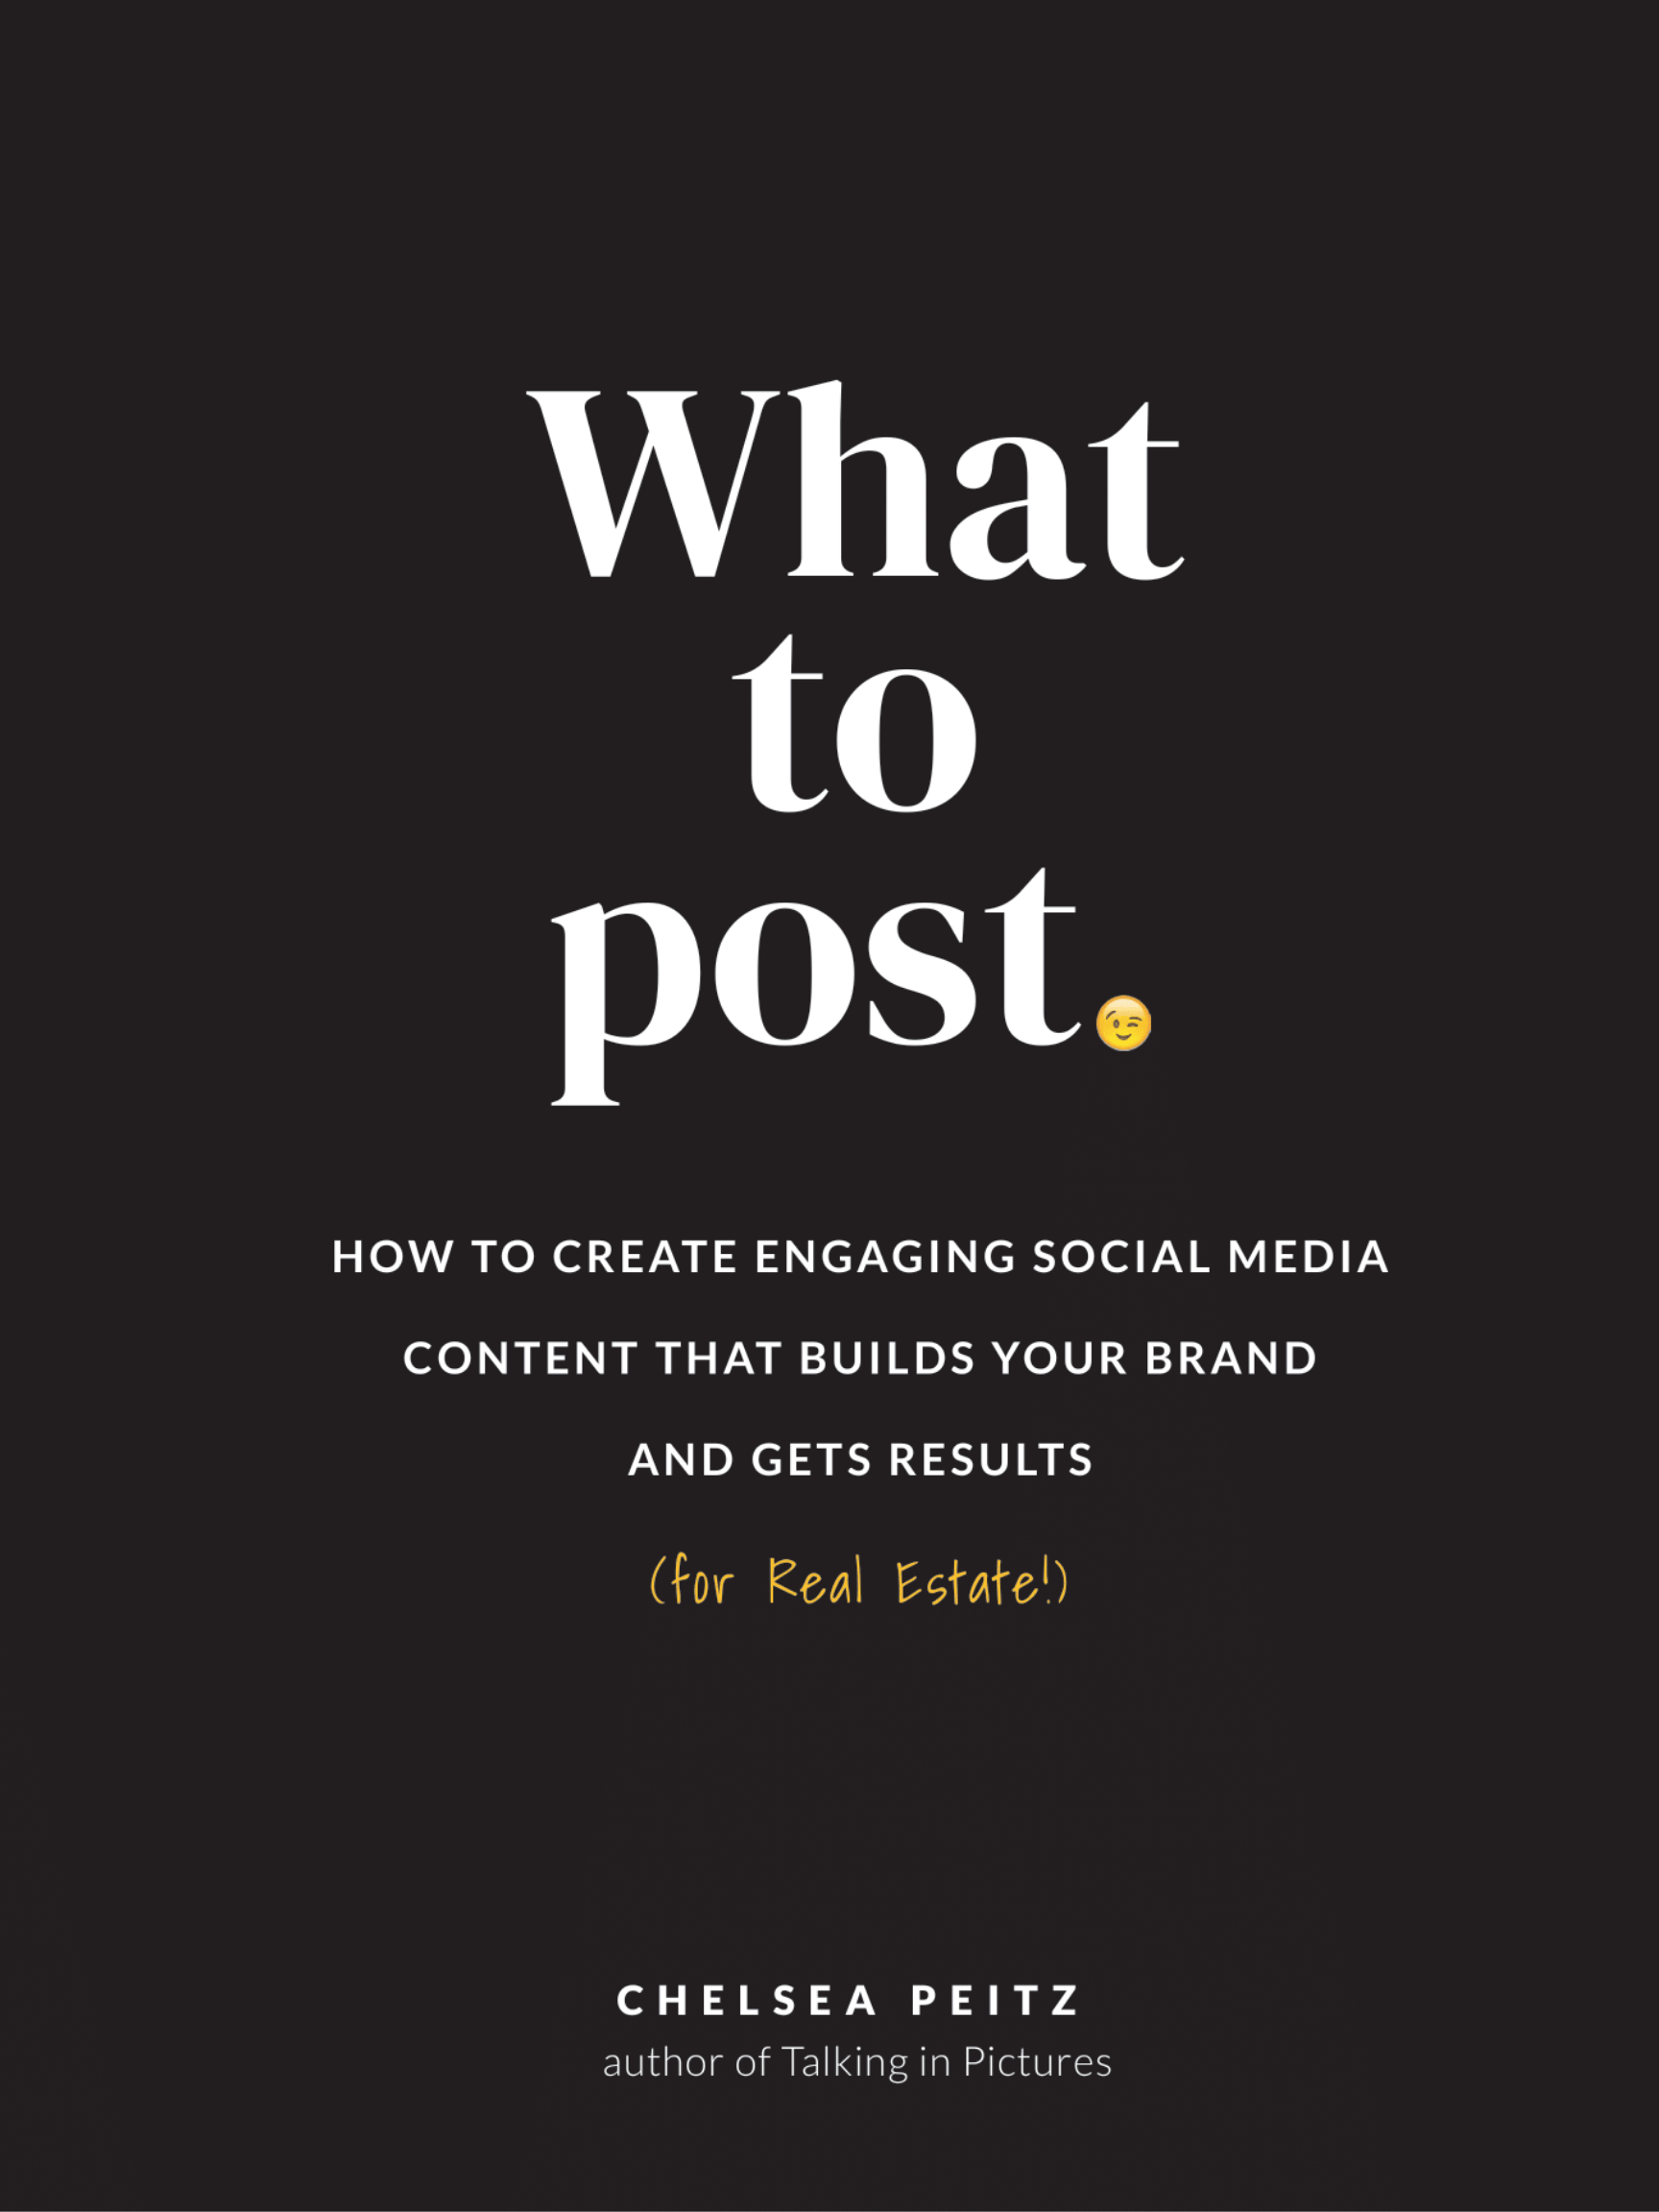 What to Post Book Chelsea Peitz Black Cover Social Media Content